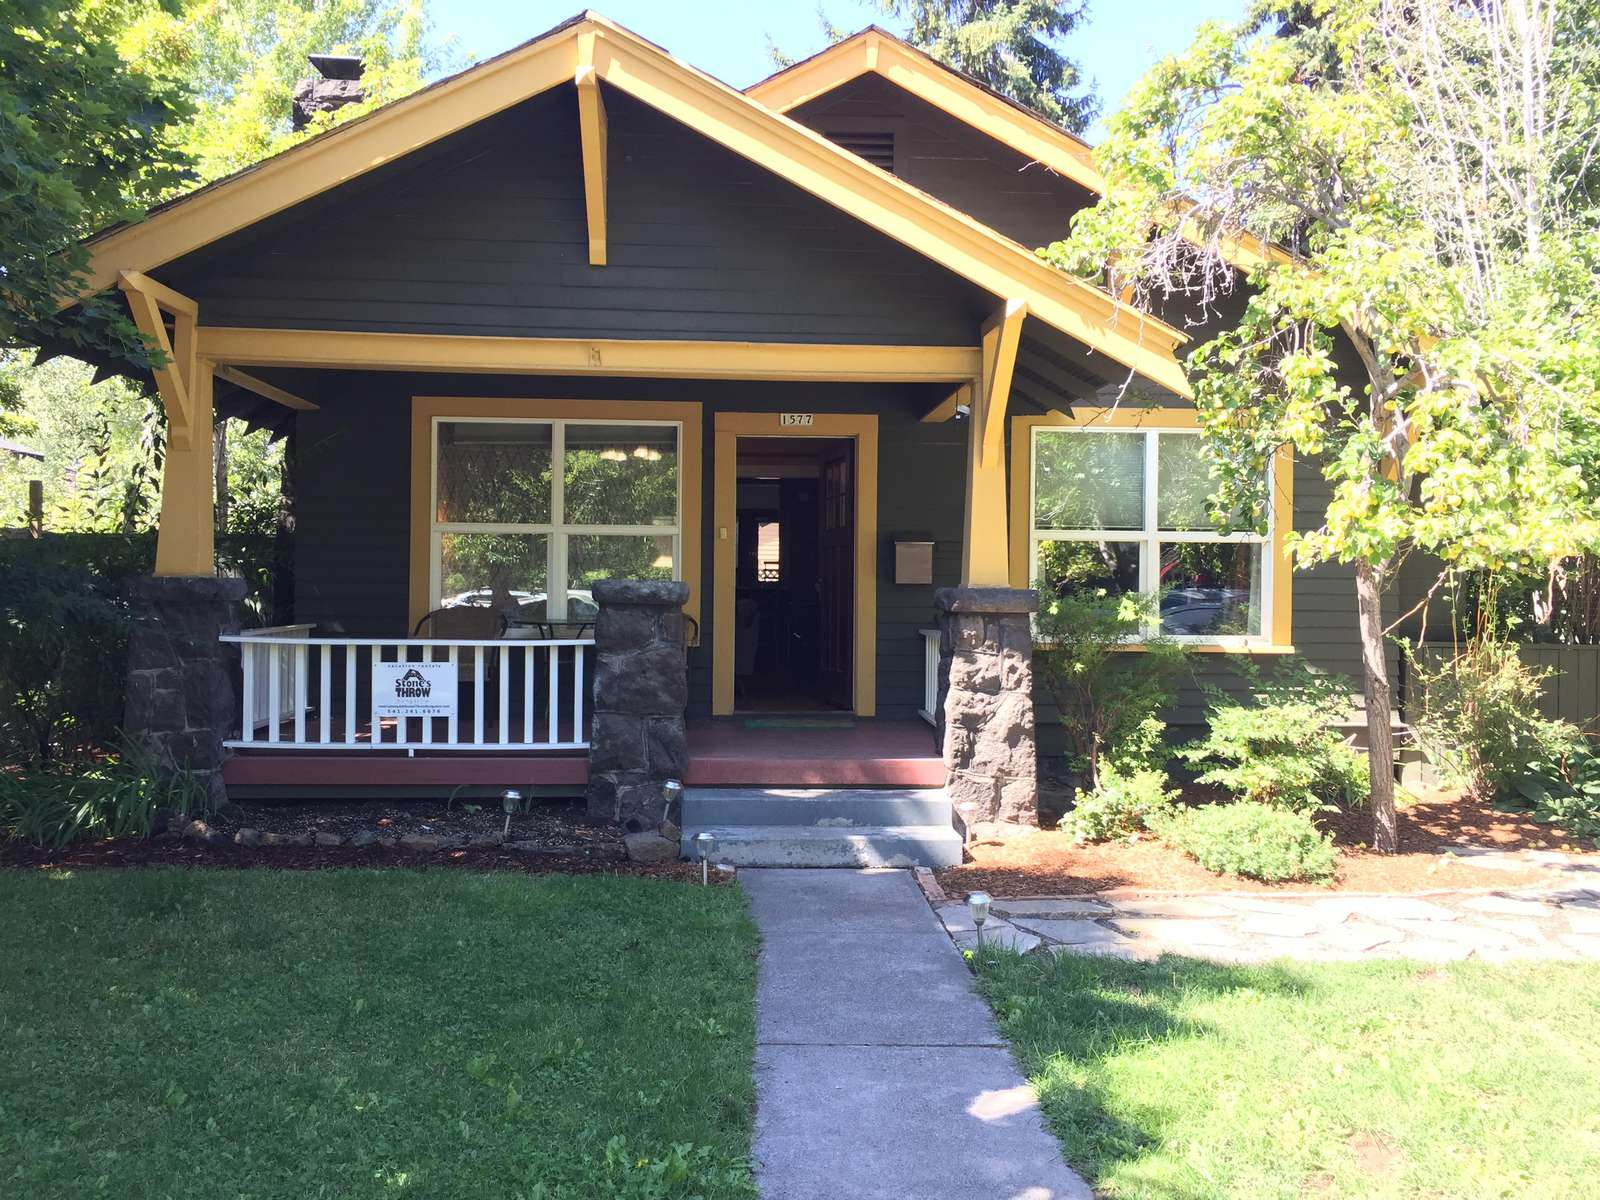 Welcome to the Elderberry Cottage with hot tub, fireplace and 1 blk to downtown! - property